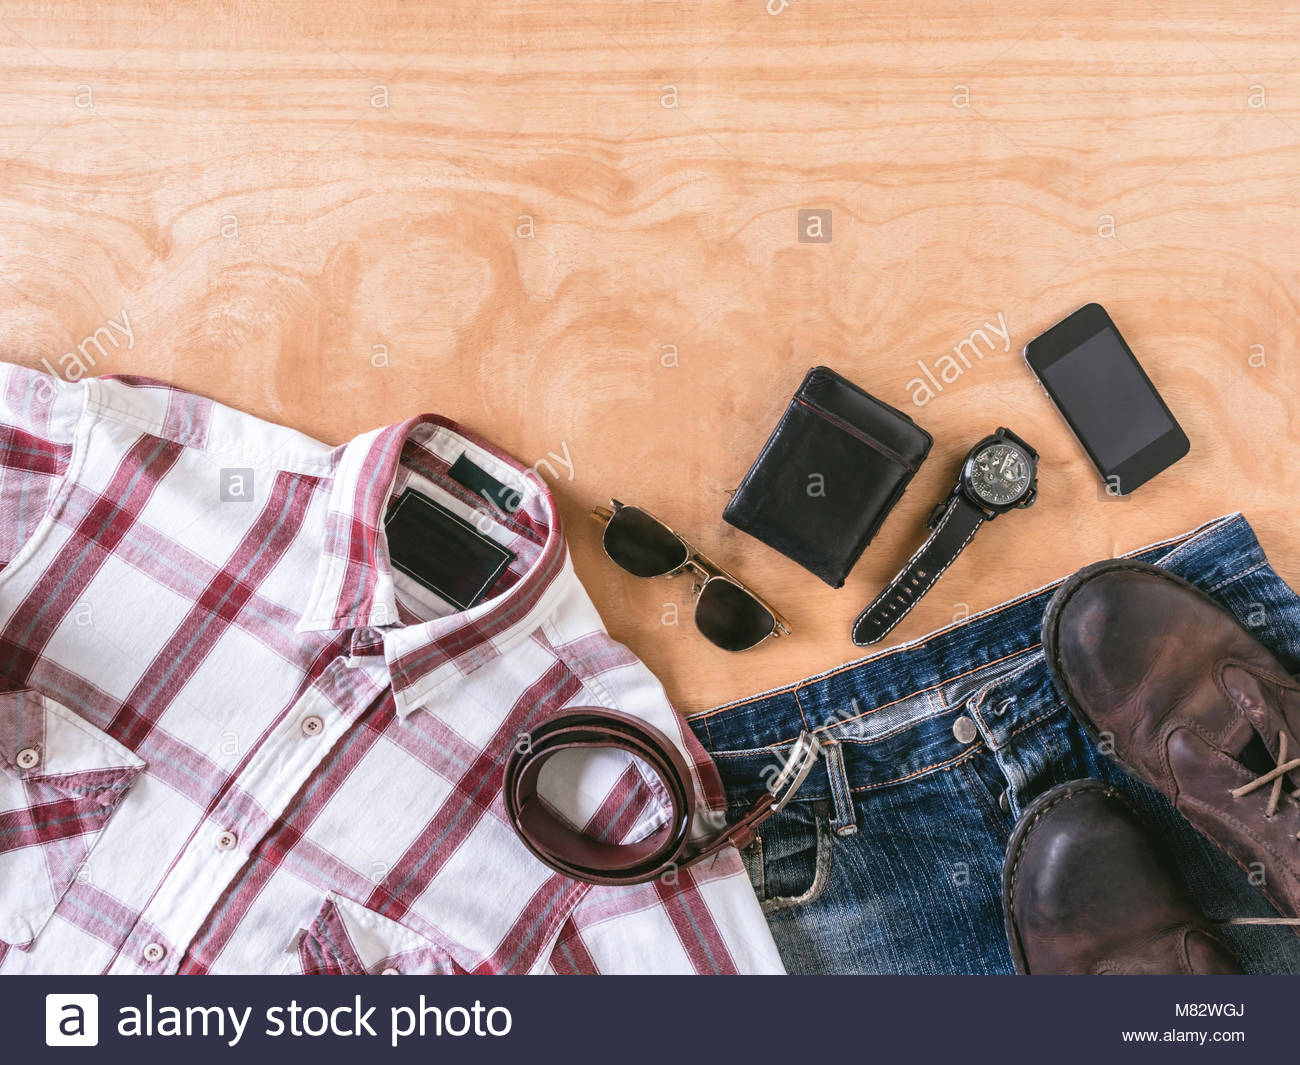 Top view of Men's casual outfits with accessories on wooden table background Stock Photo